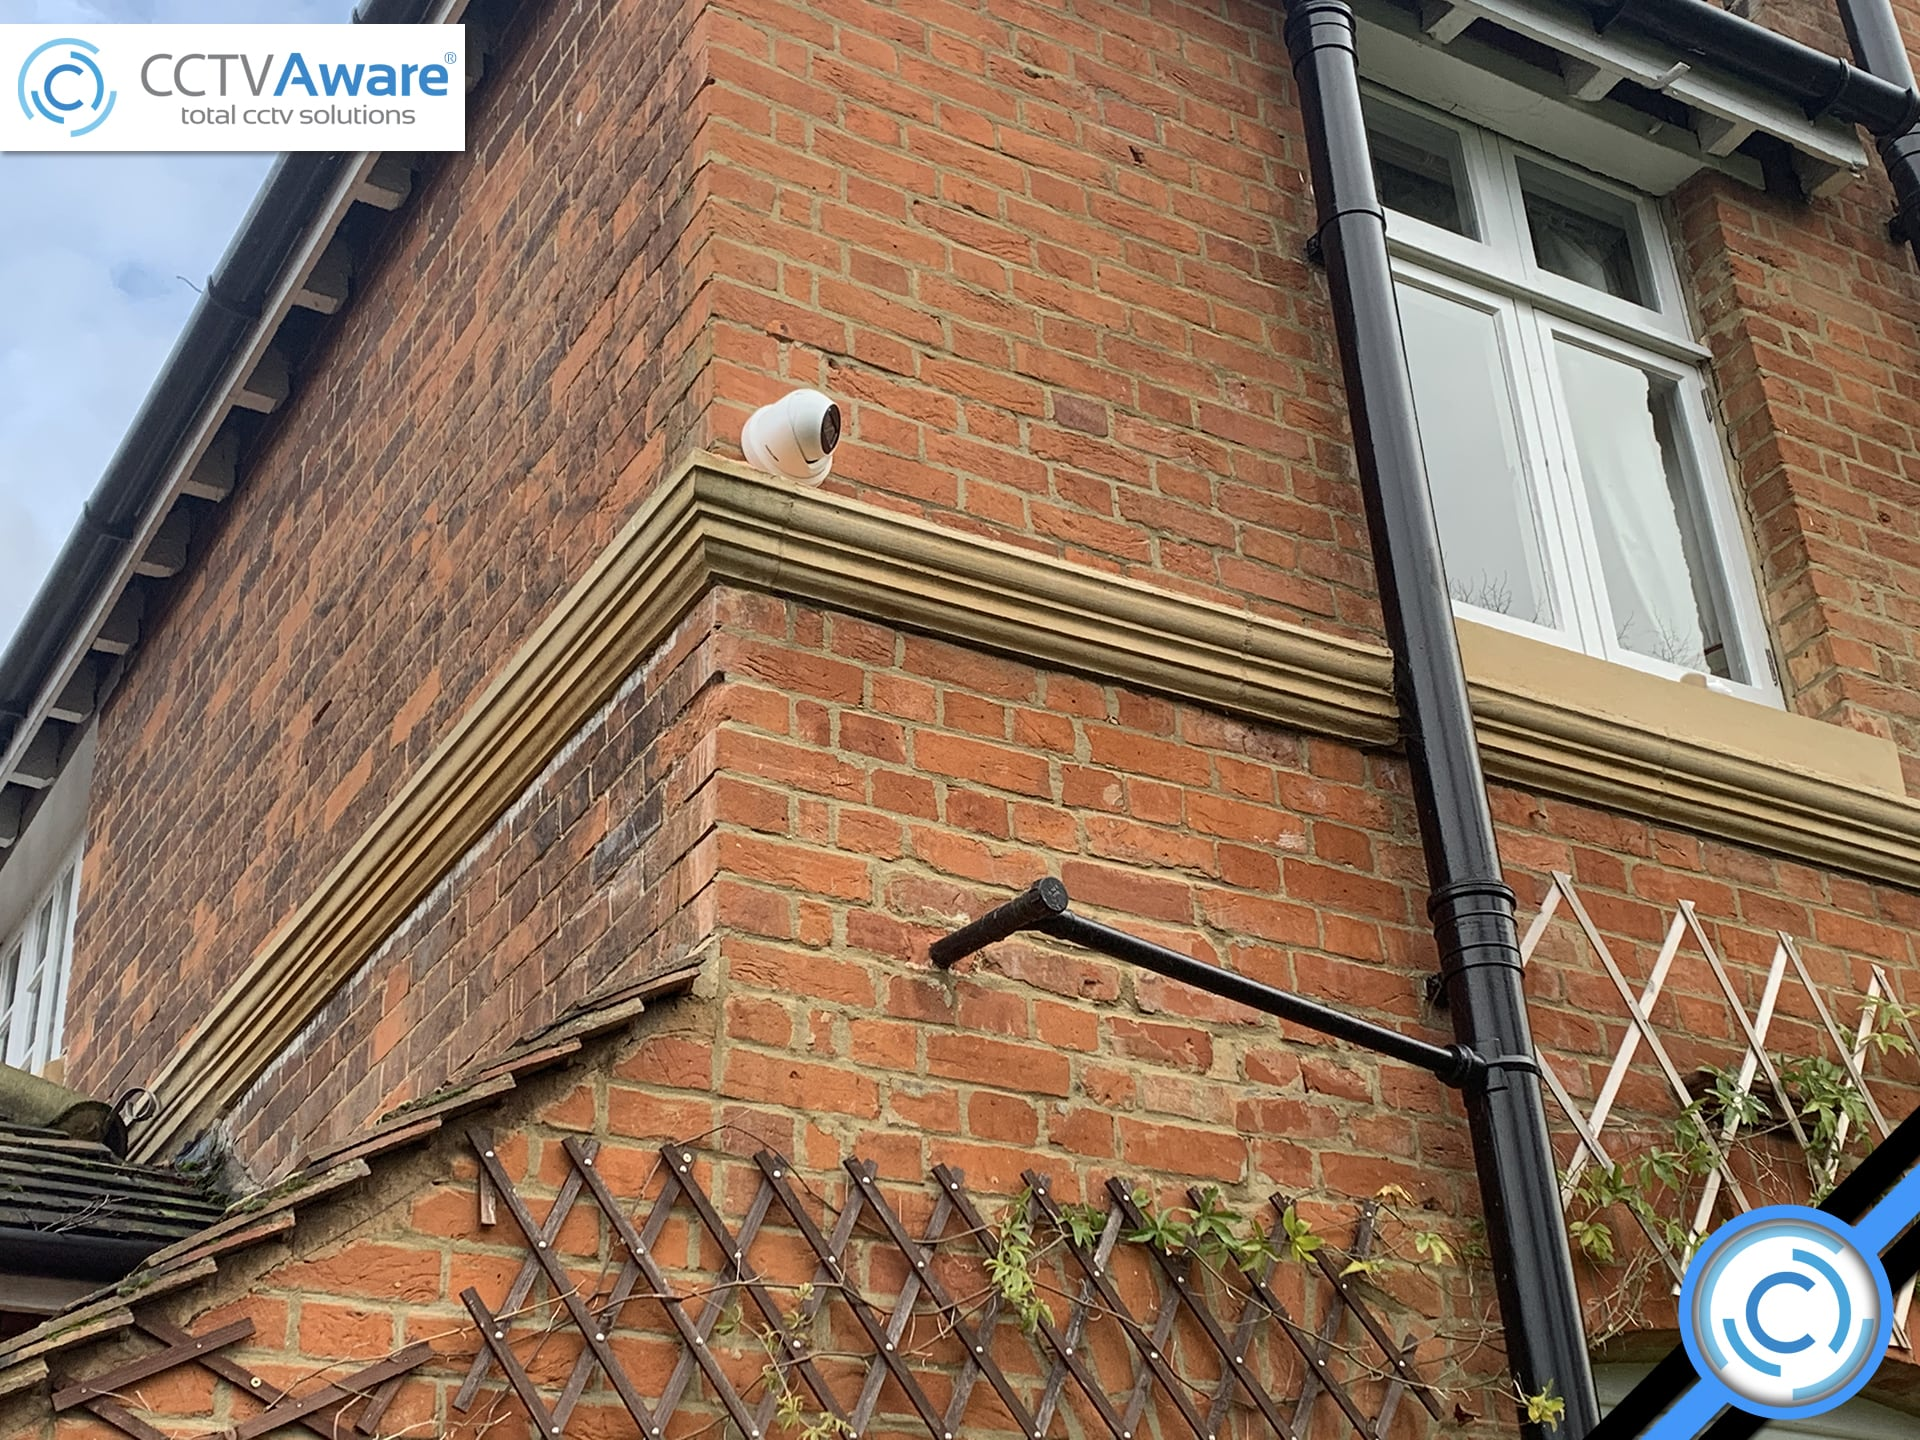 4K CCTV Installation for Care Home in Surrey